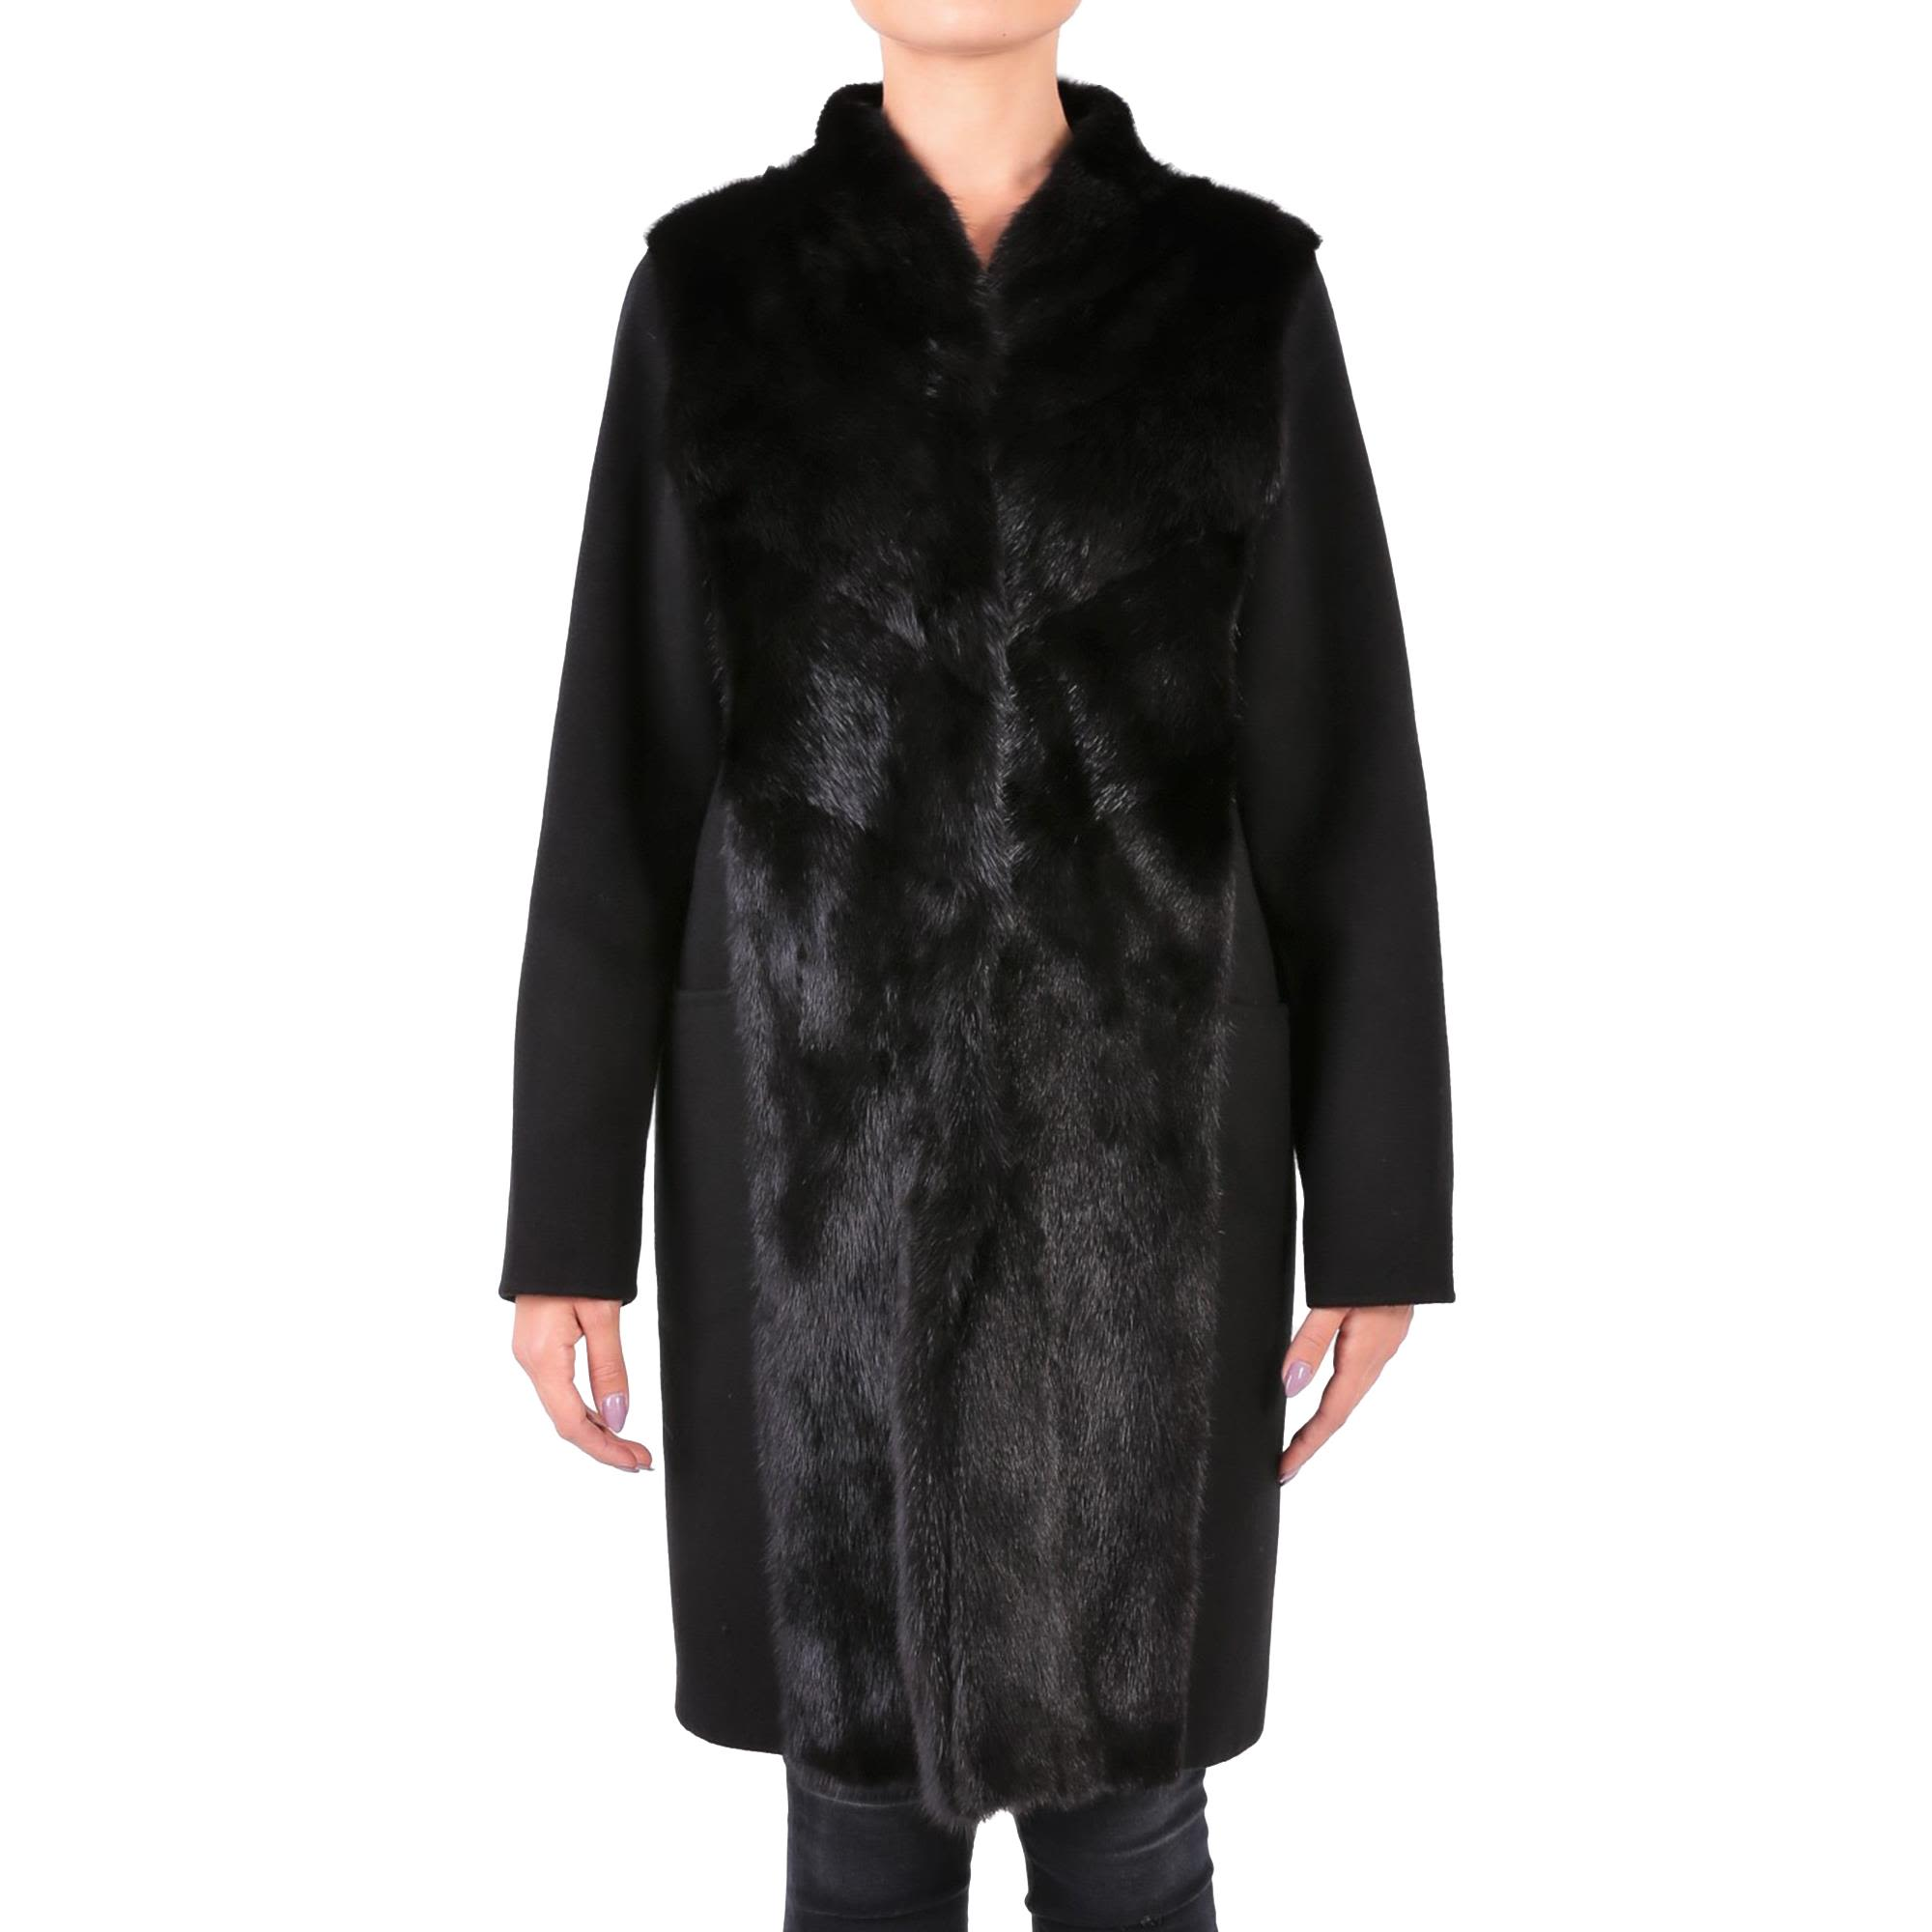 Rizal Wool And Cashmere Coat